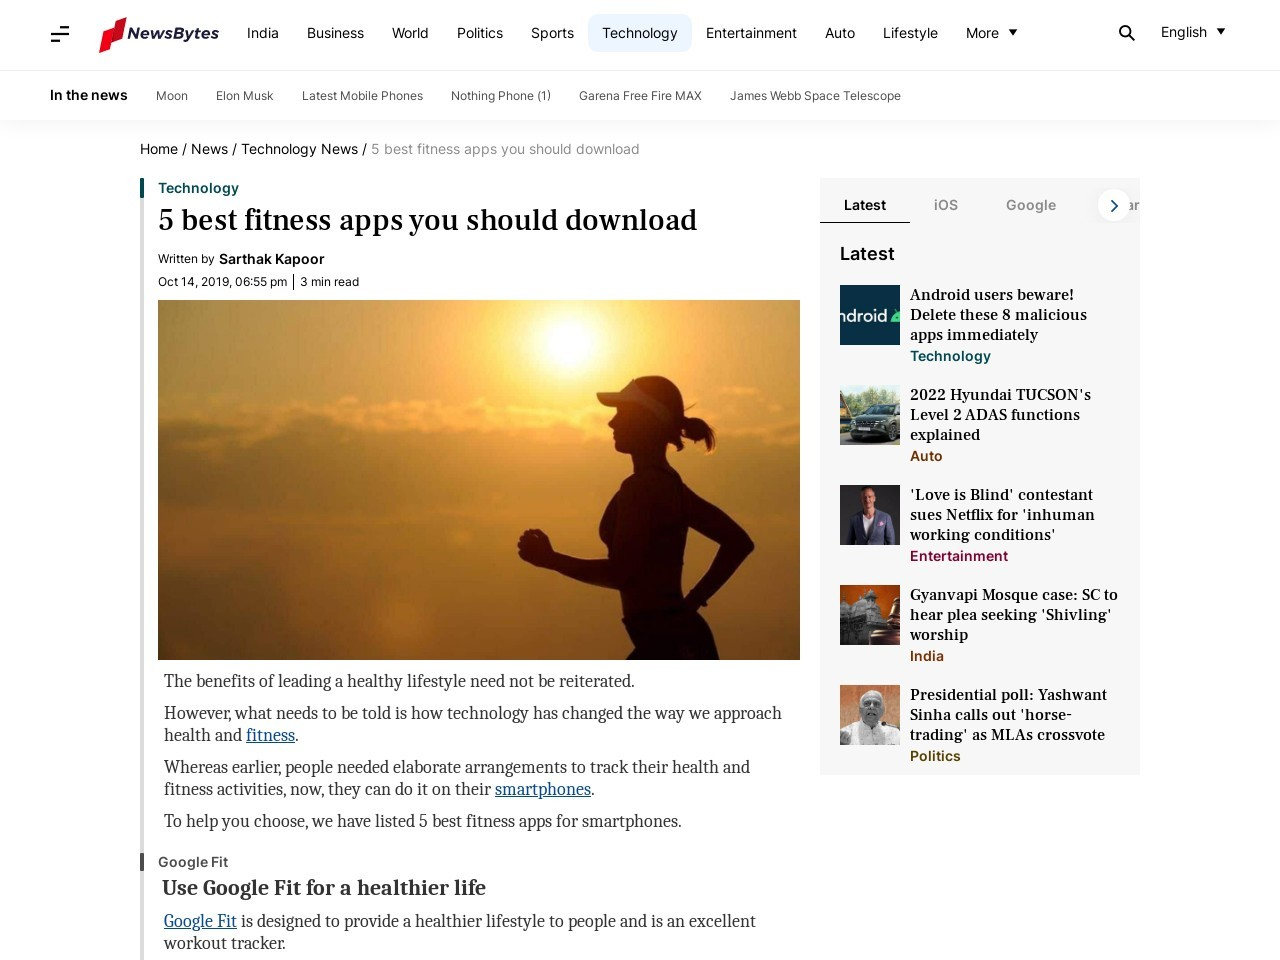 5 best fitness apps you should download